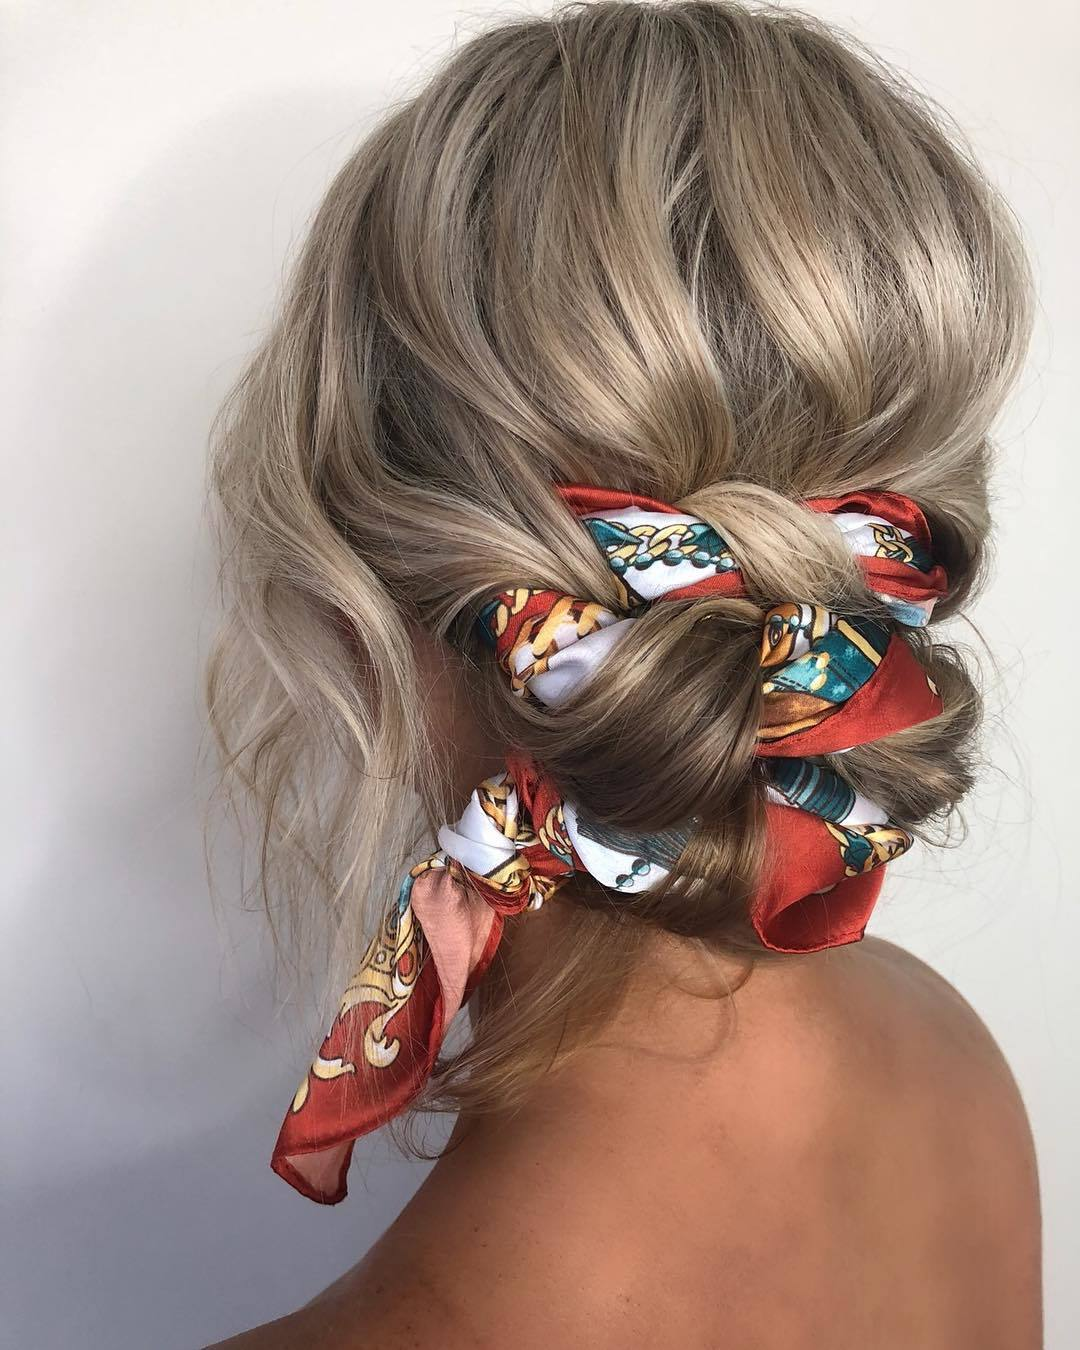 Bandana hairstyles: Woman with ash blonde wavy hair styled into a braided bun with a bandana weaved into it